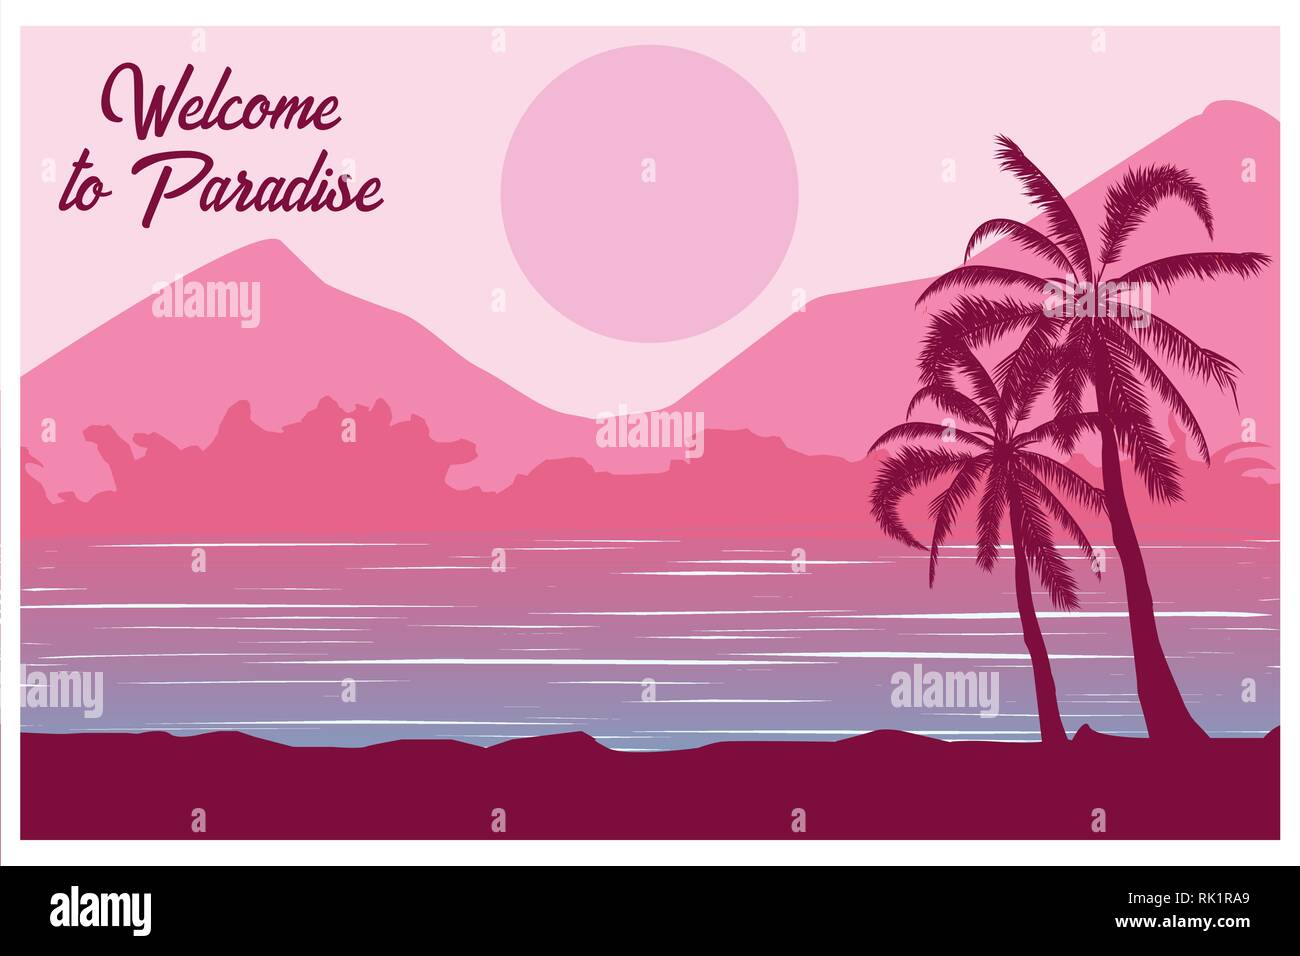 Tropical landscape. Postcard Welcome to paradise Summer background. Palm trees silhouette. Vector illustration. Stock Vector